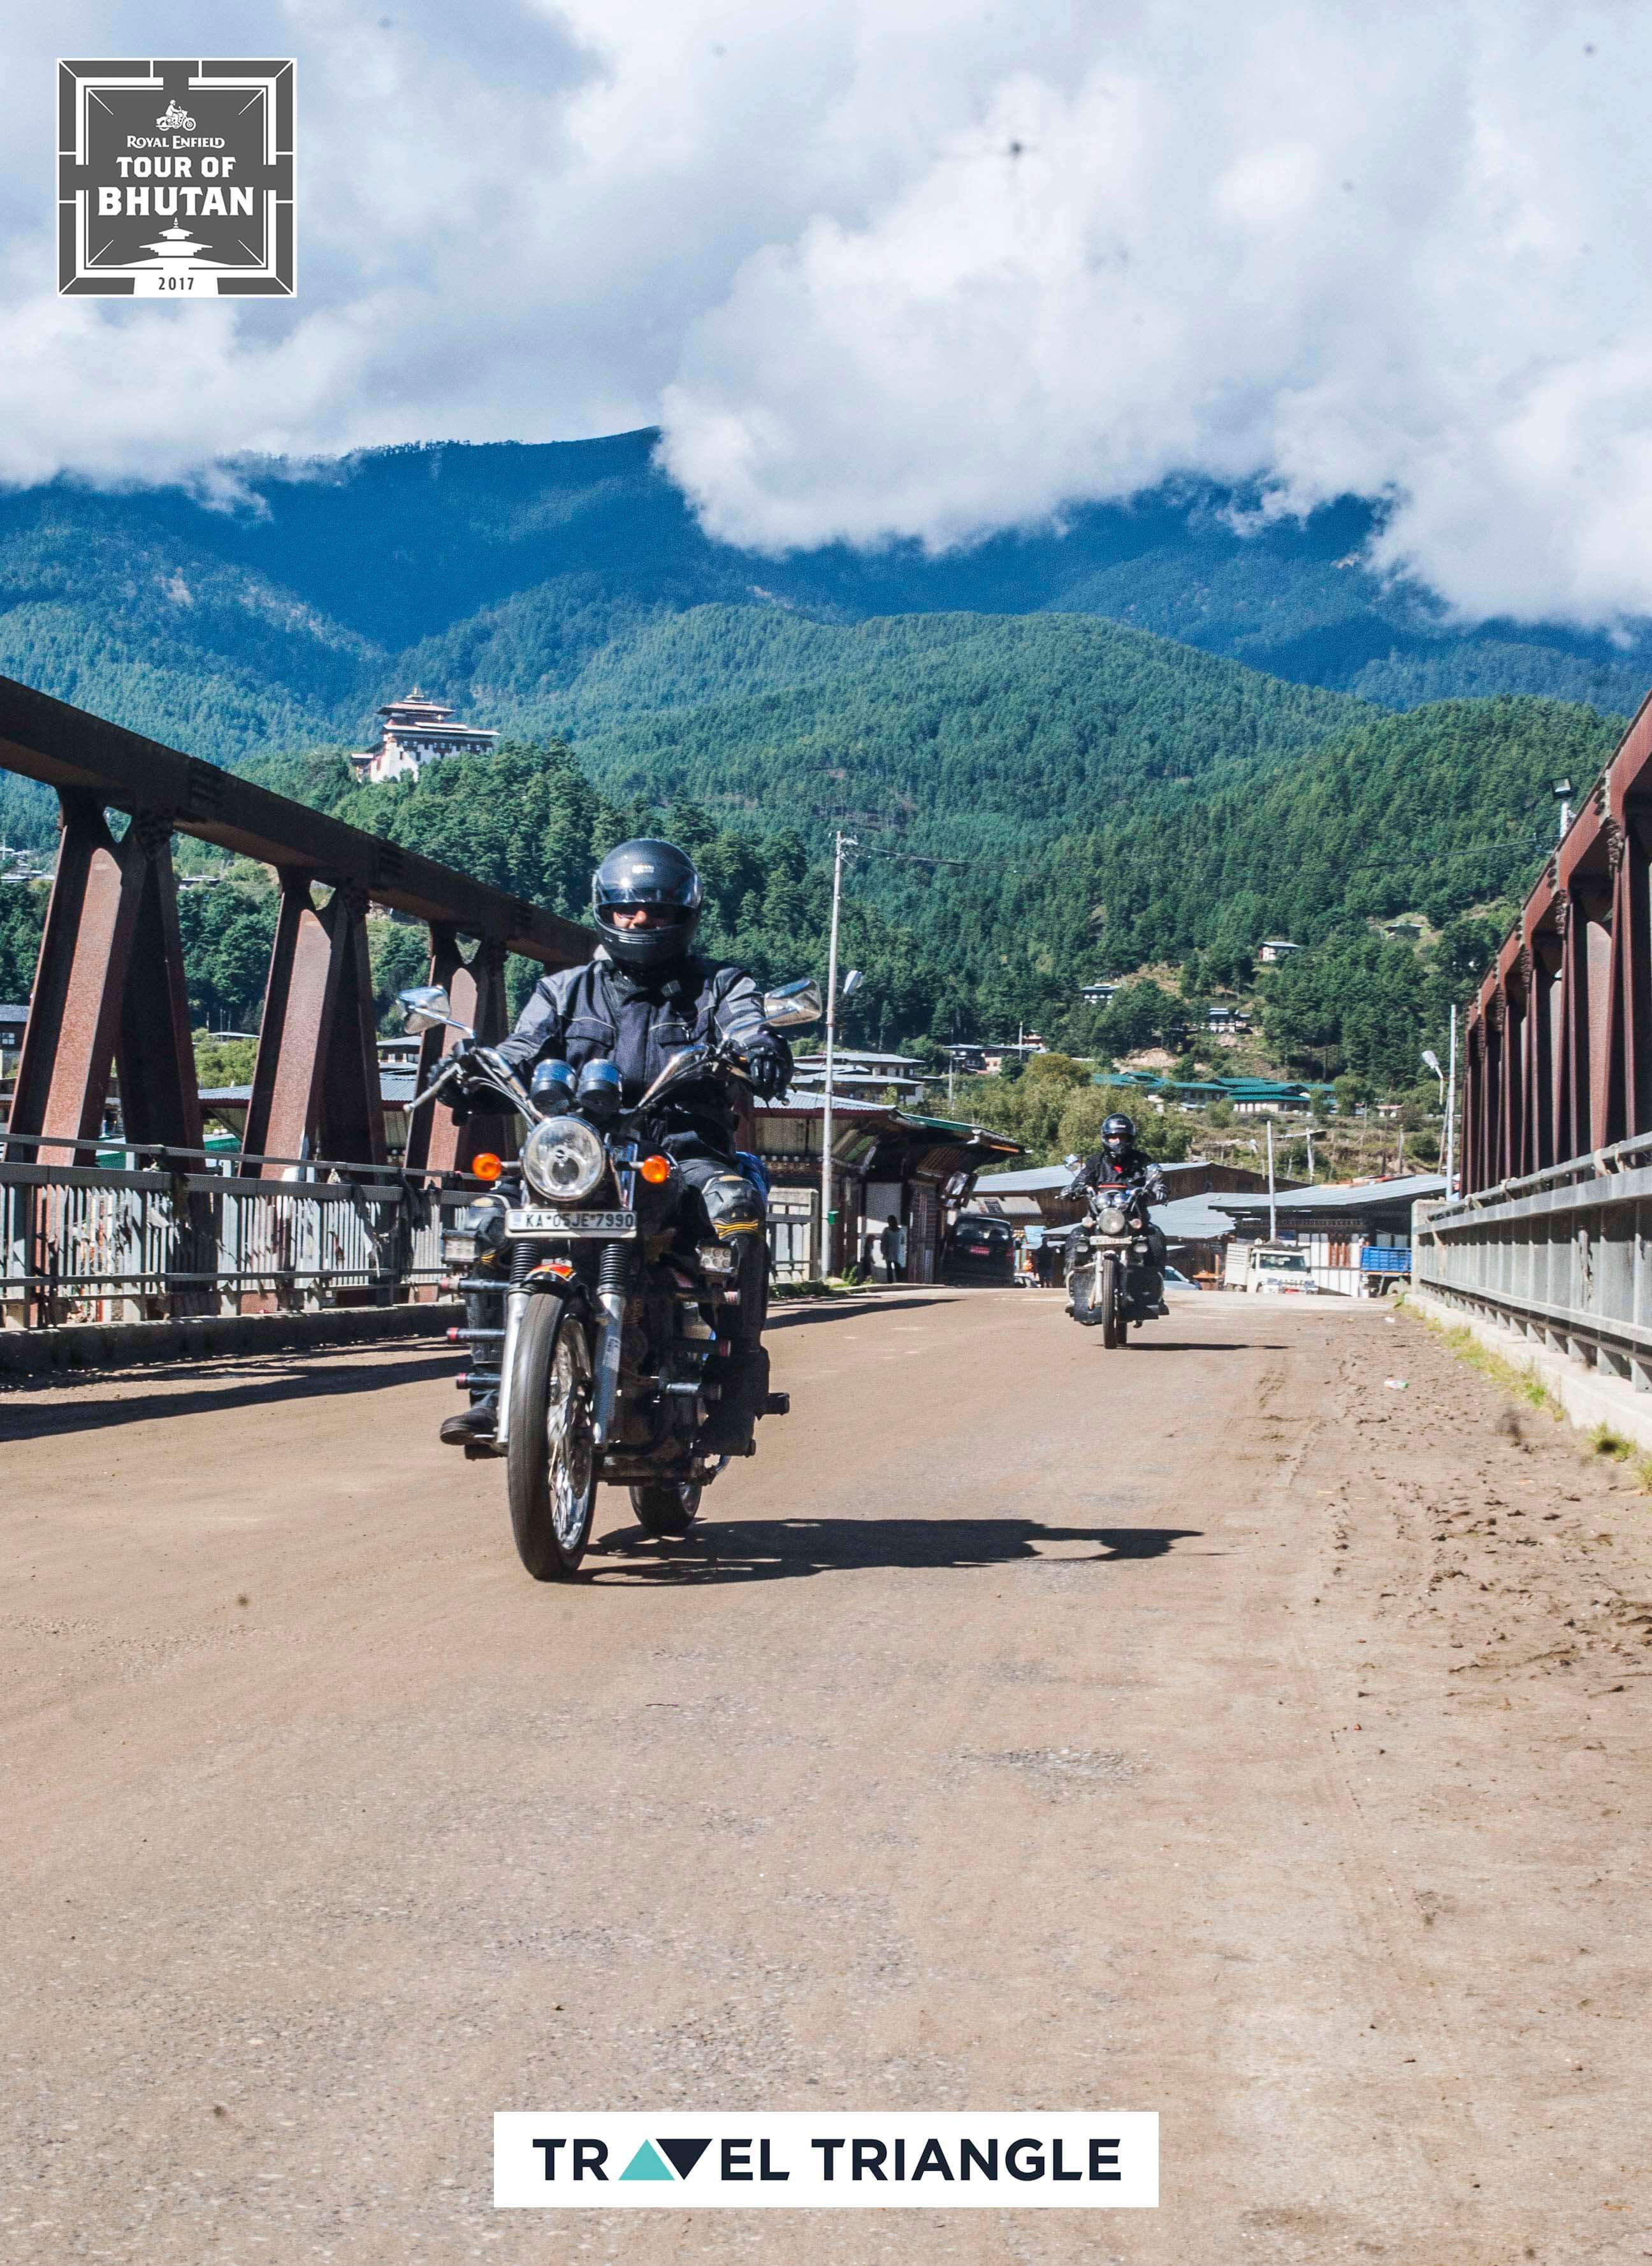 Bumthang to Mongar: riding over a bridge to mongar